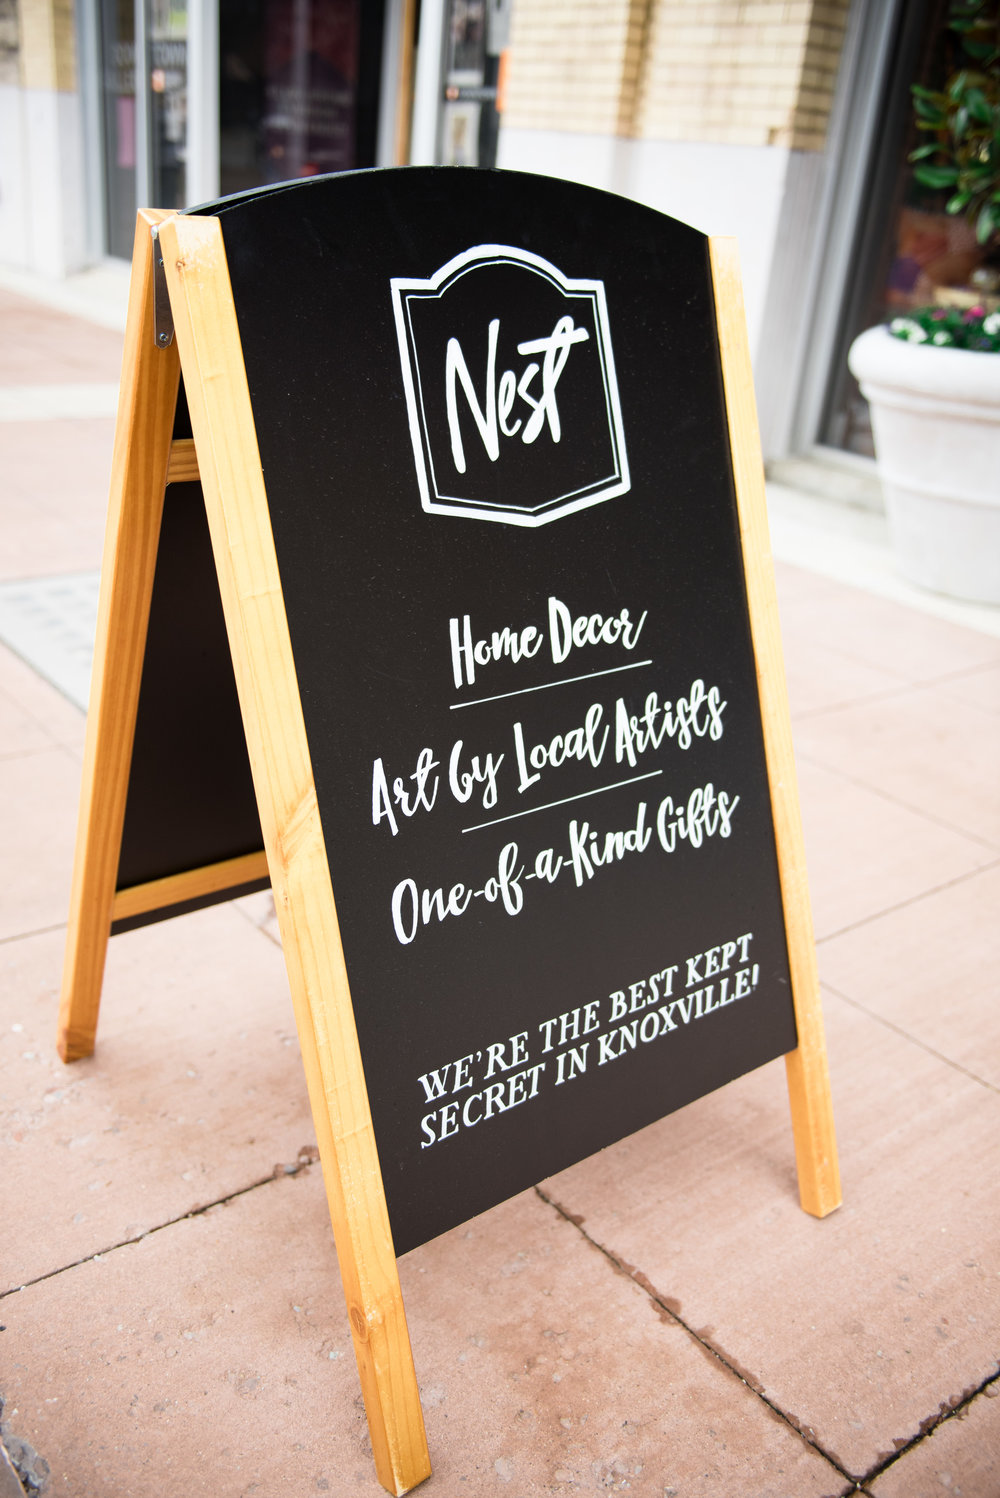 I Love Local Knoxville, TN Nest Knoxville-9312.jpg